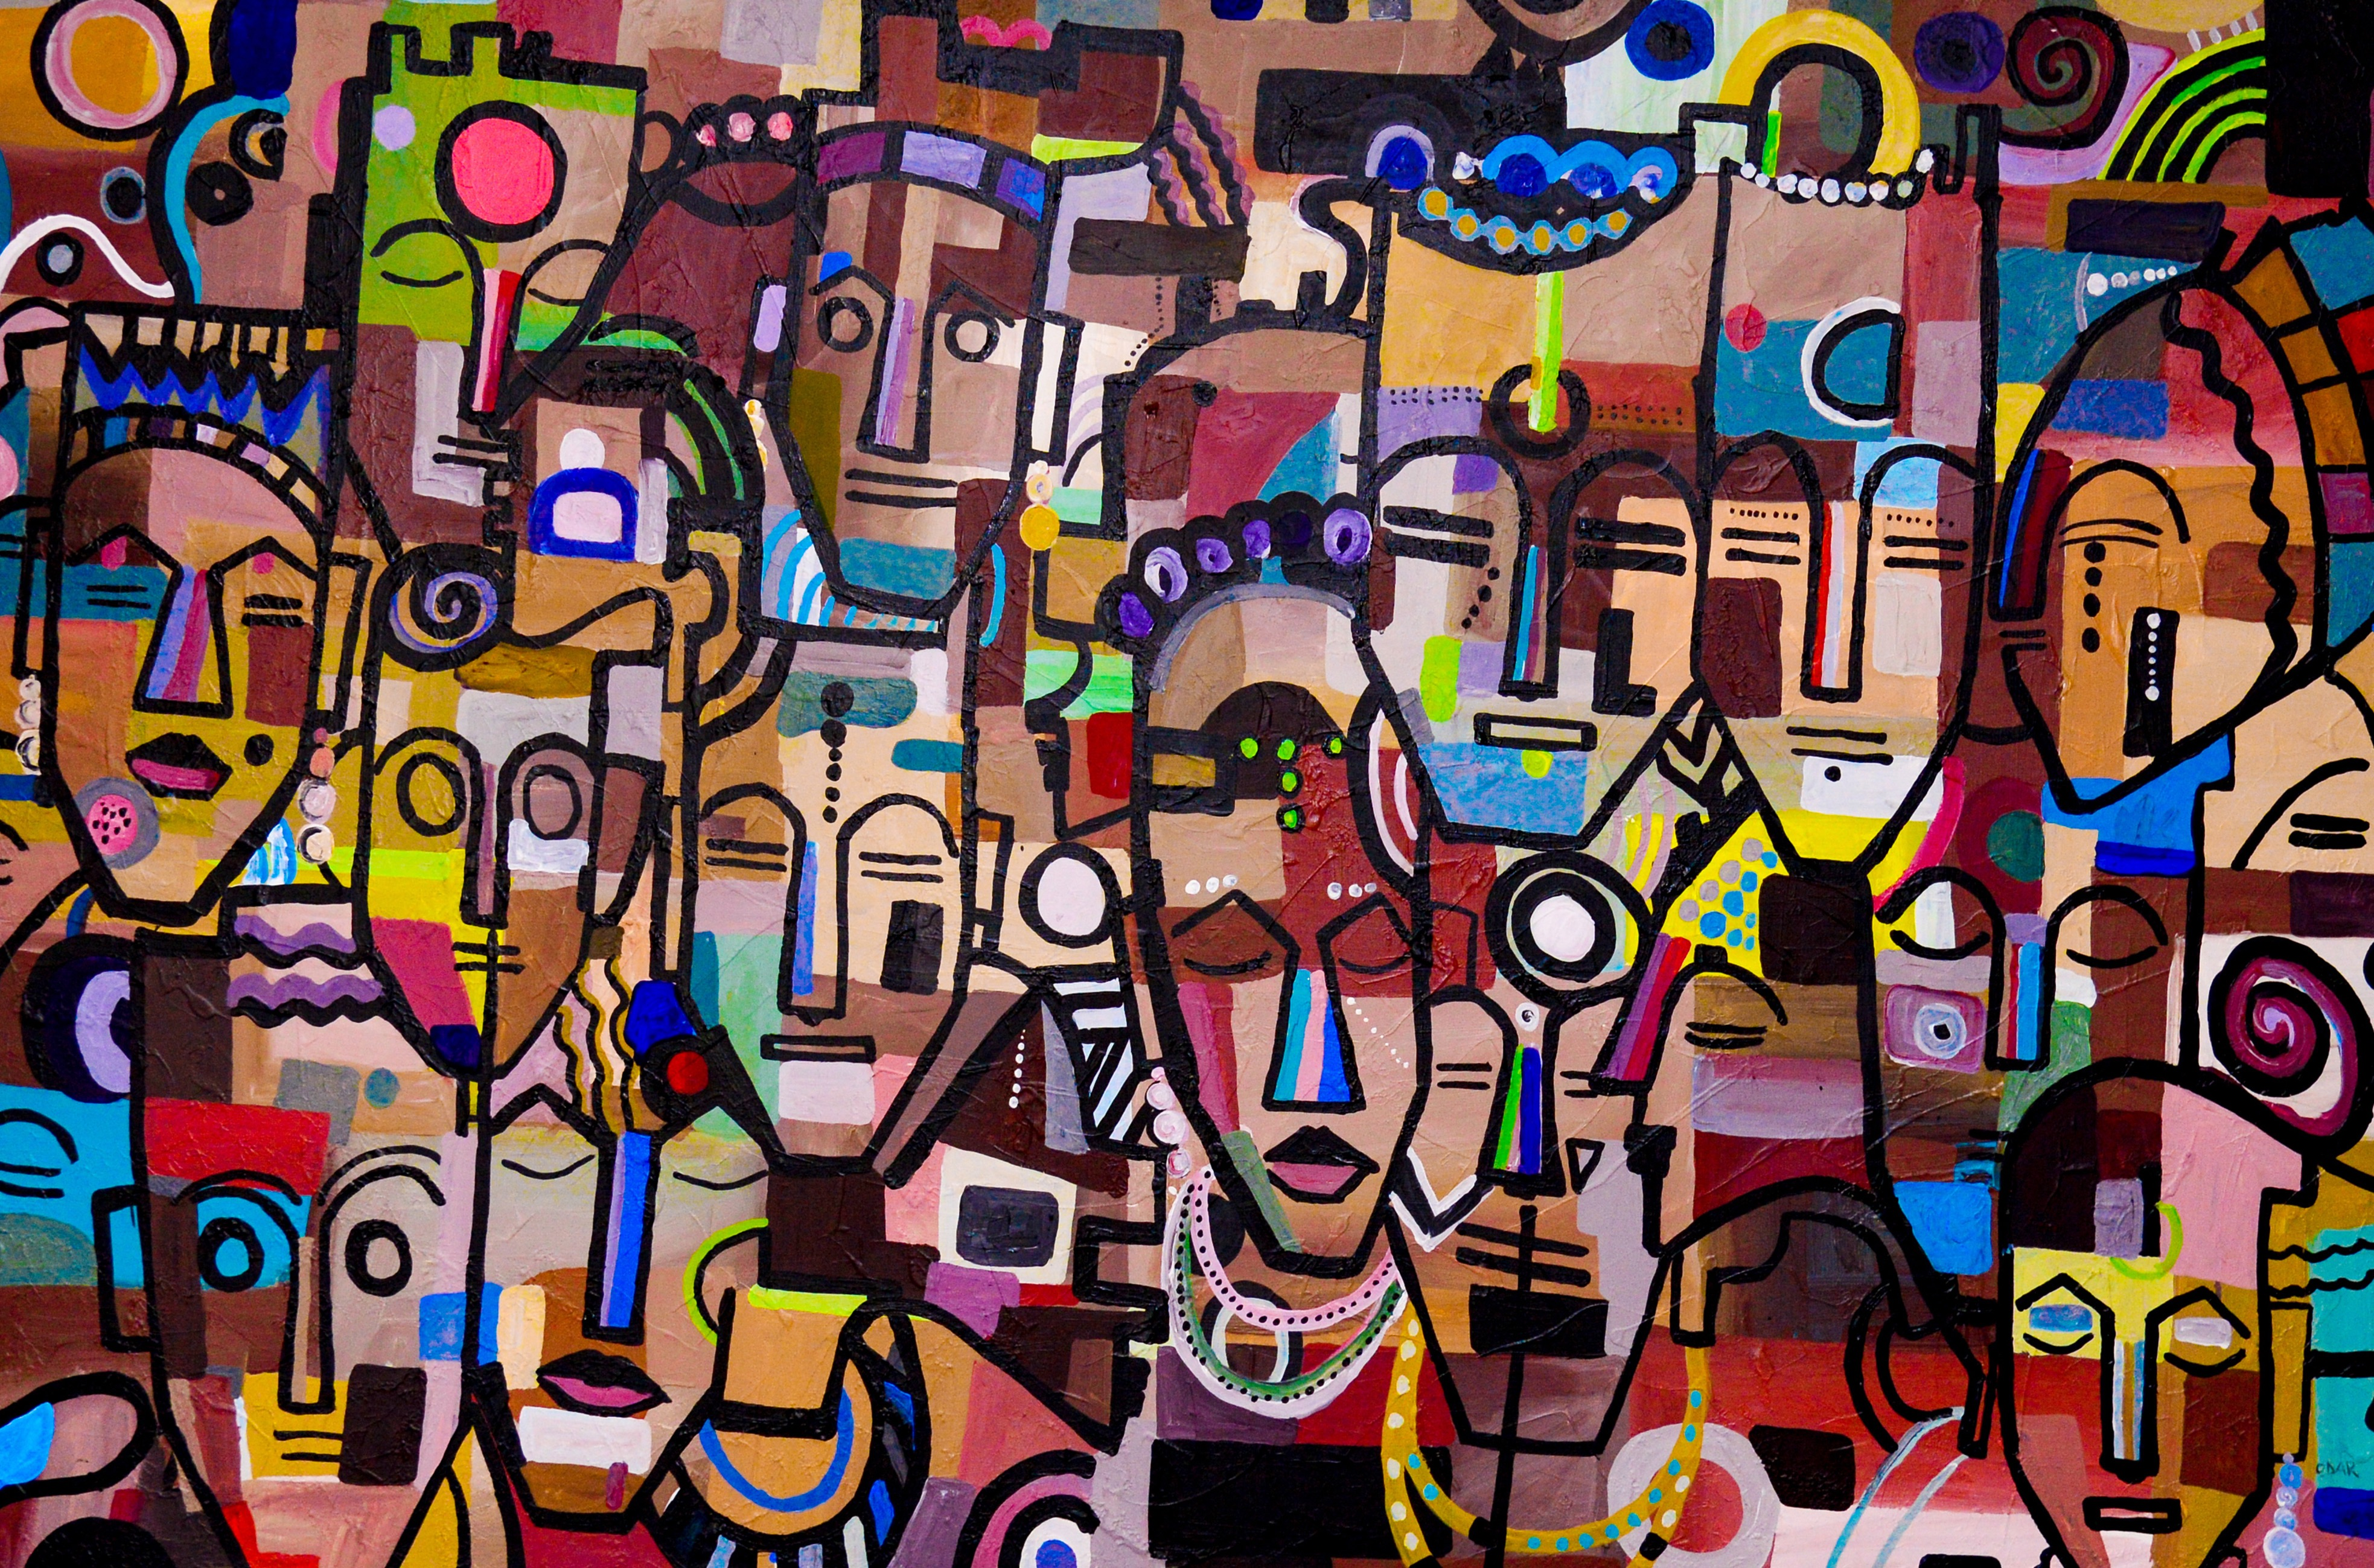 Abstract painting of African faces by Rwandan artist, Ganza Odart